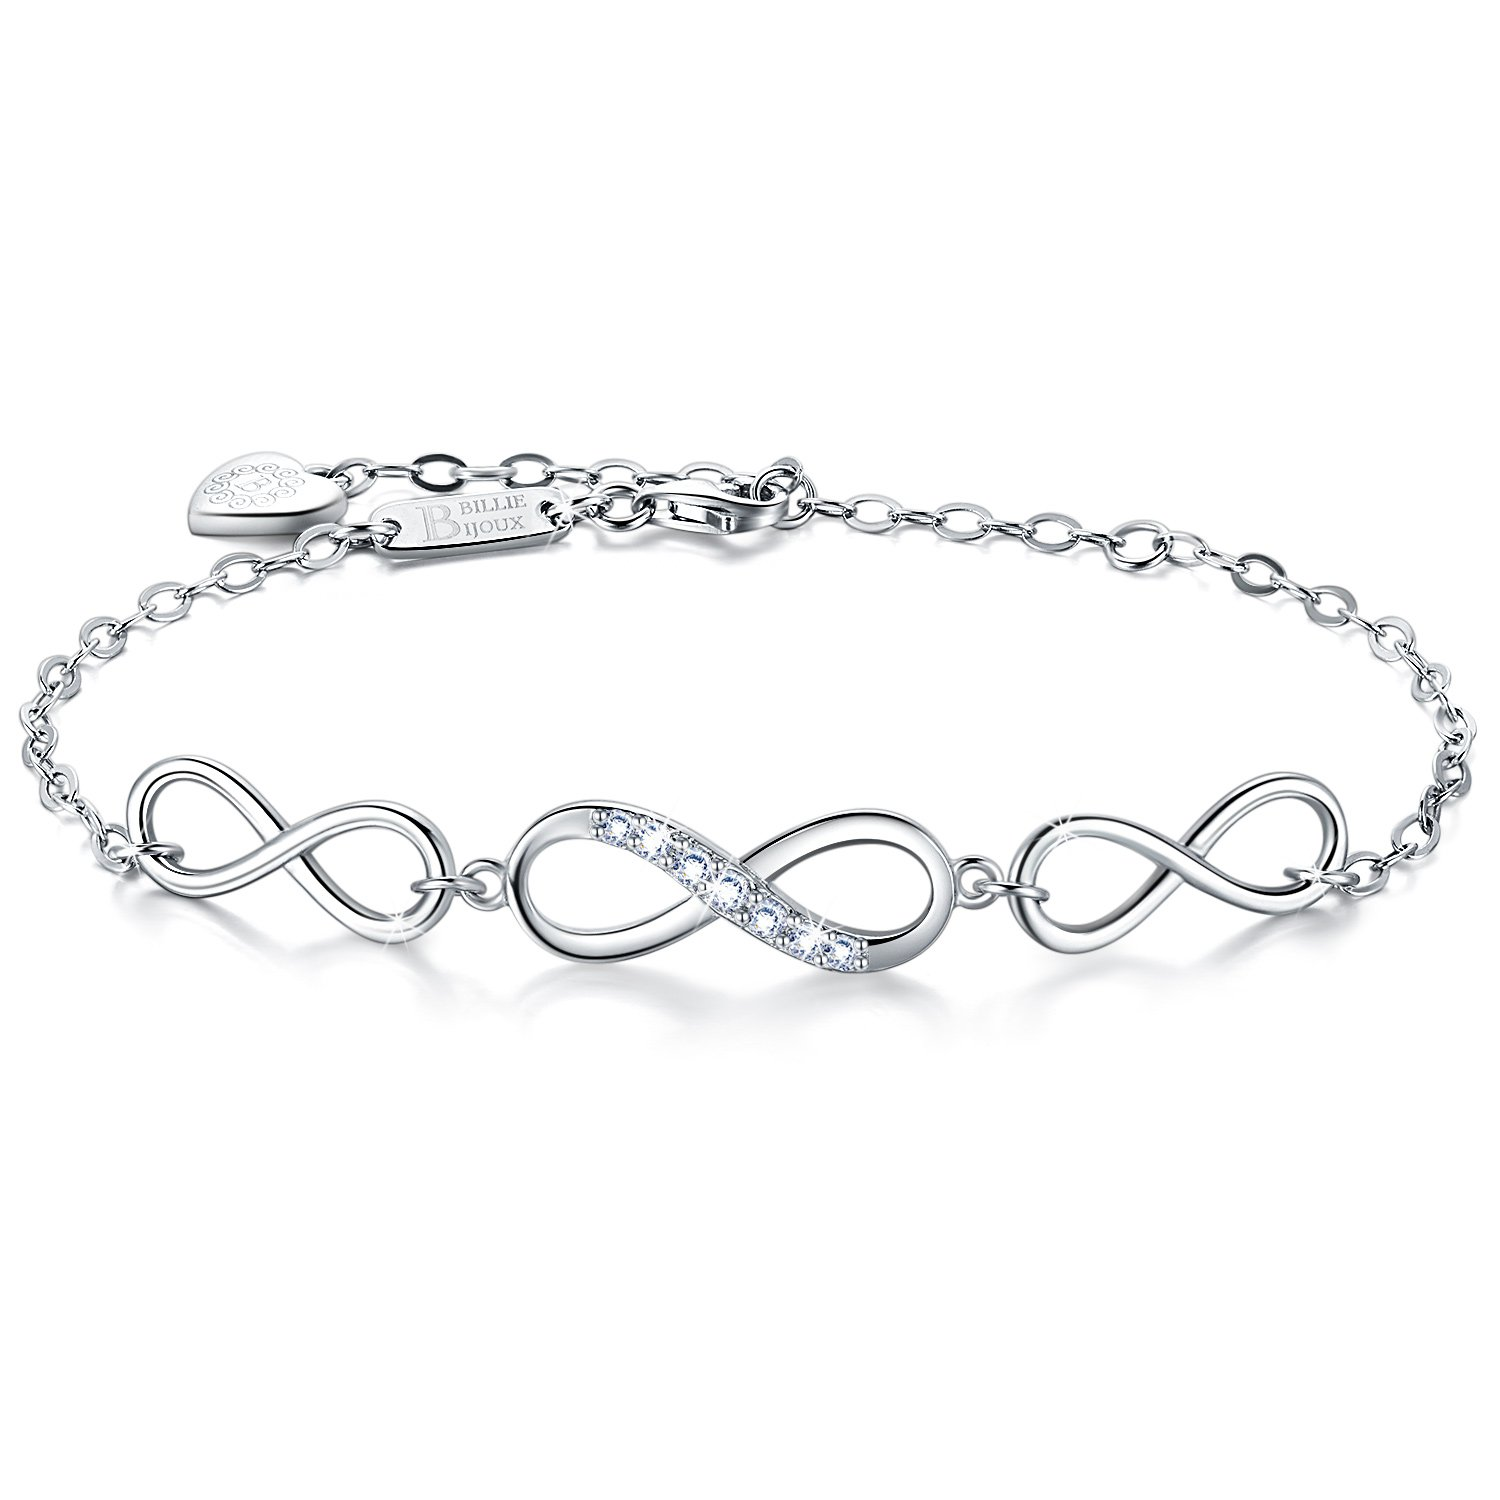 Billie Bijoux Womens 925 Sterling Silver Infinity Endless Love Symbol Charm Adjustable Bracelet White Gold Plated Gift for Graduation Christmas Day